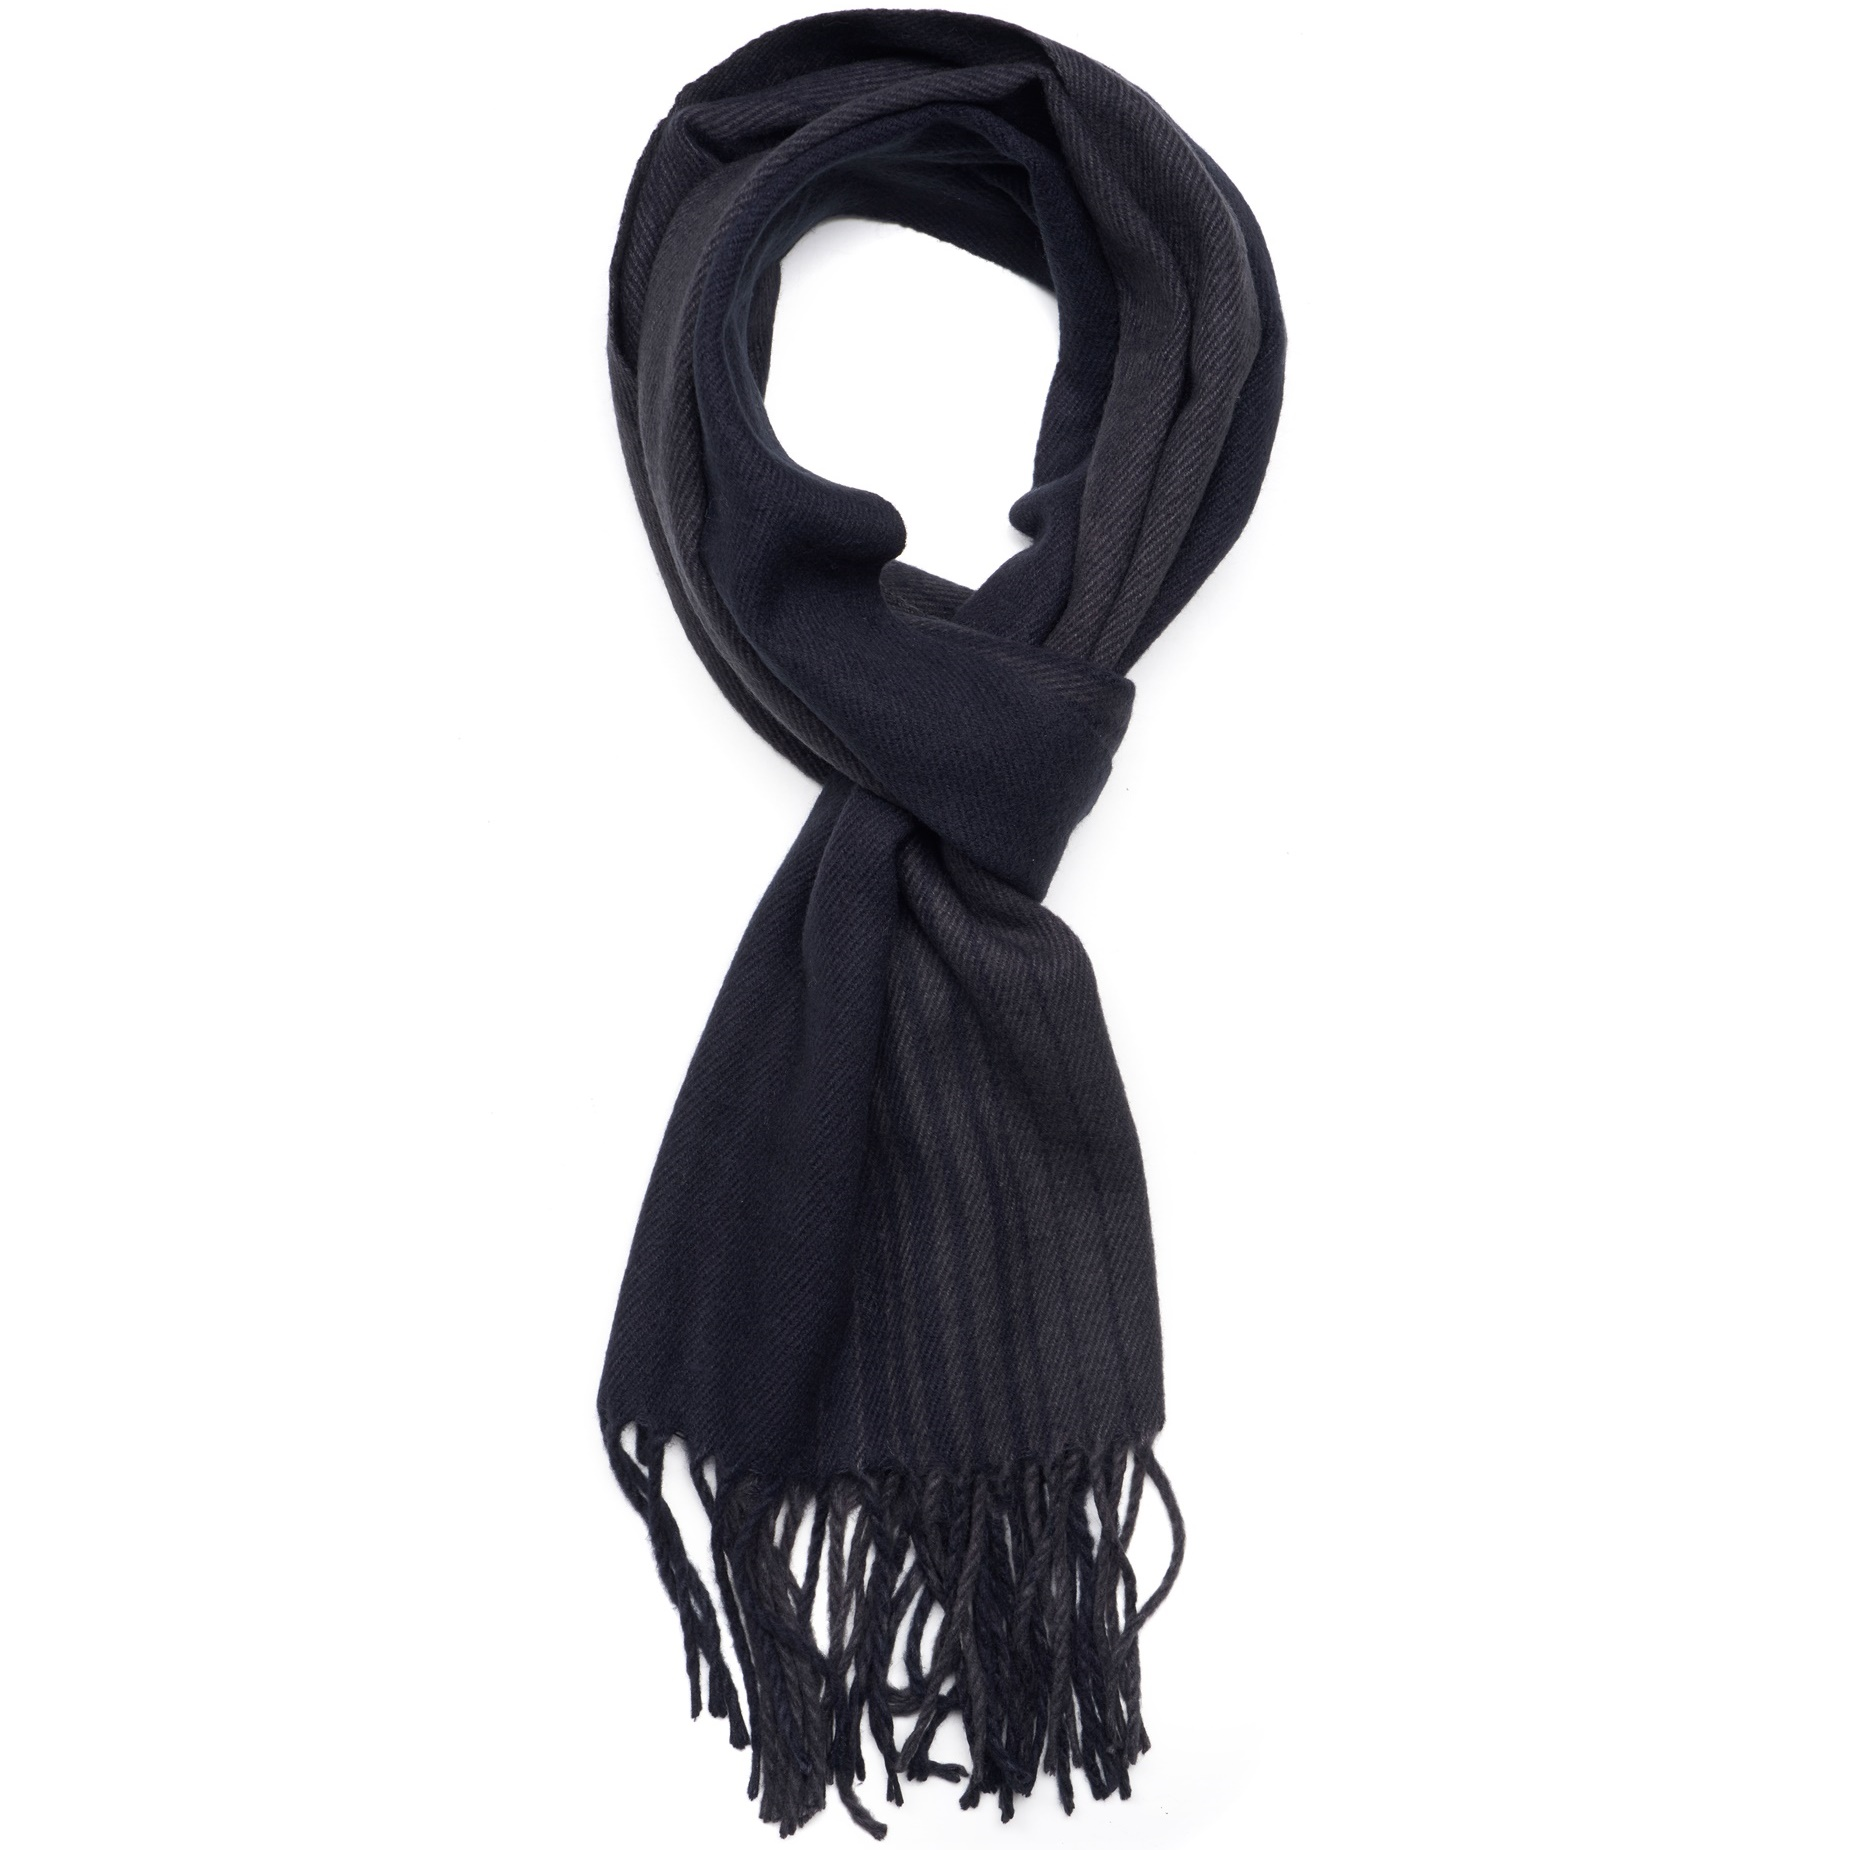 Hammer-Anvil-Mens-Plaid-Striped-Scarf-Womens-Winter-Scarves-Cashmere-Soft-Feel thumbnail 19